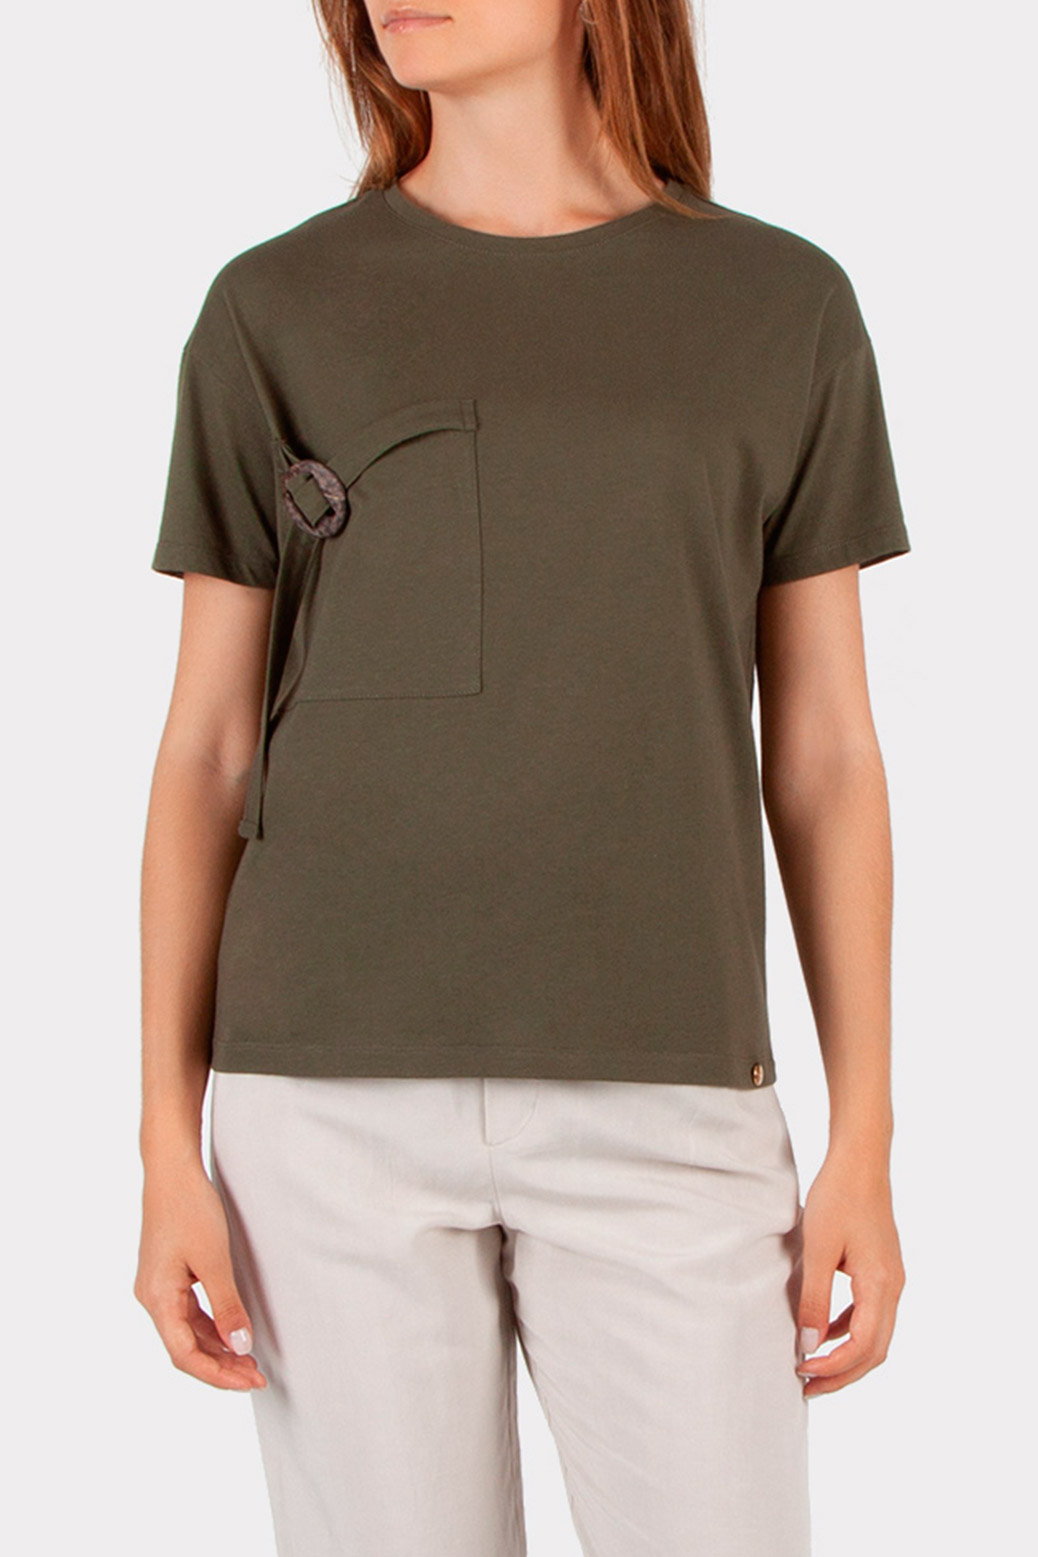 T-shirt with a  pocket